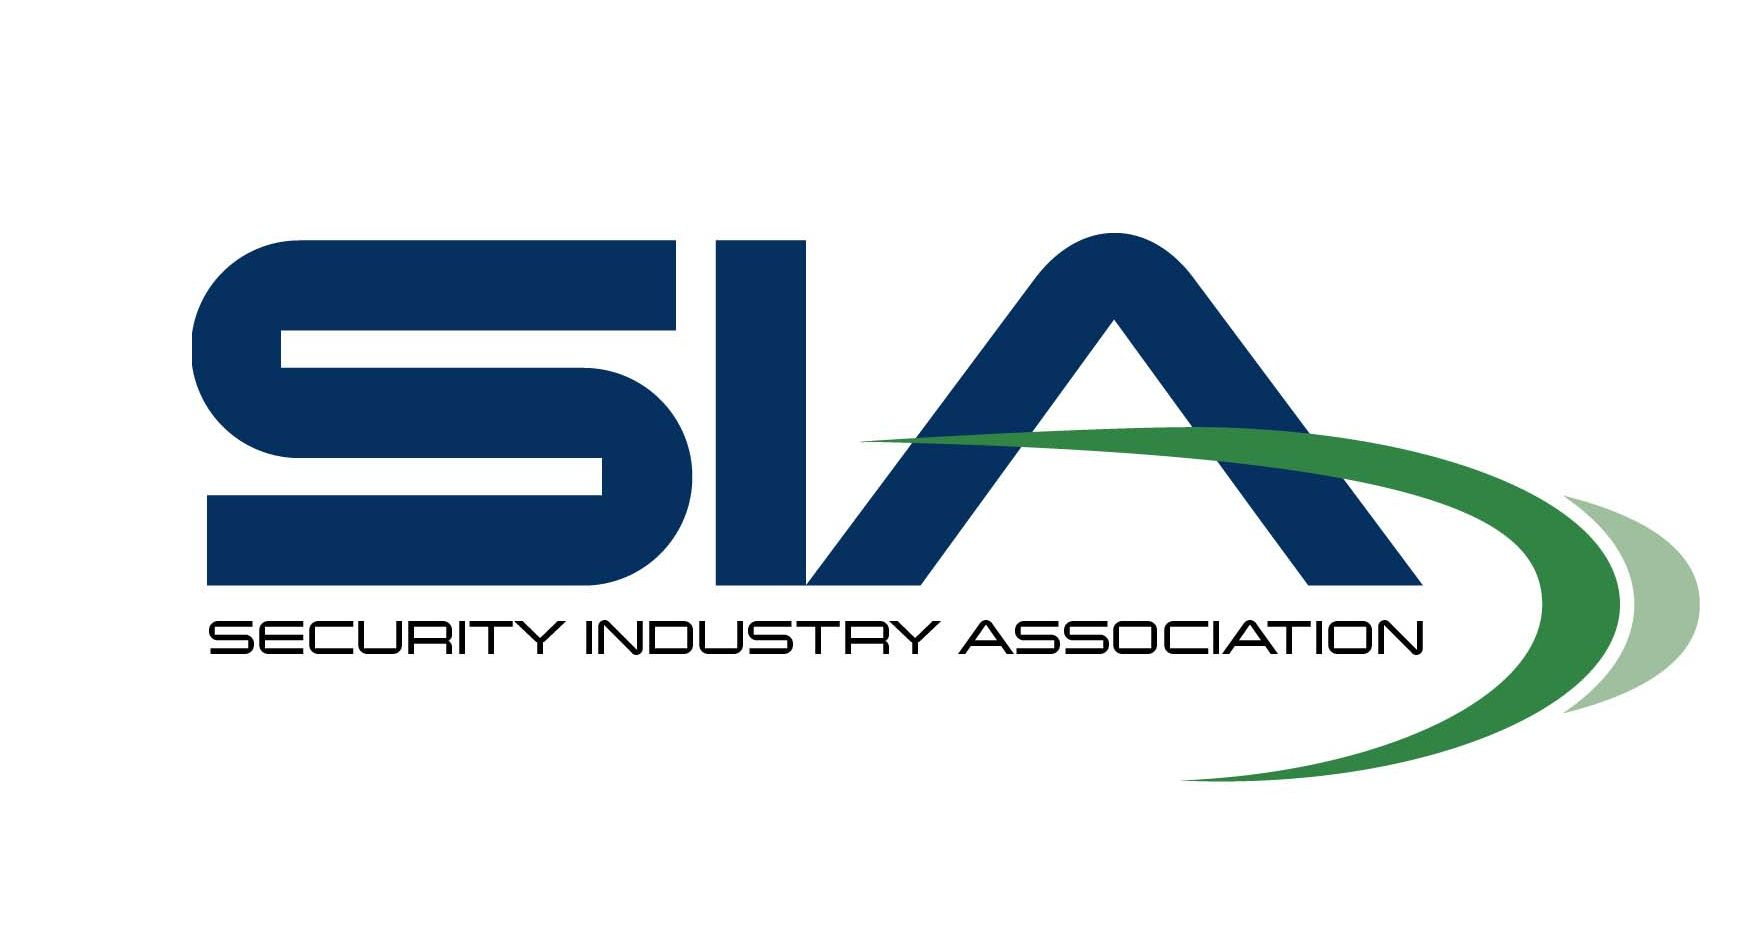 Security Industry Association Image